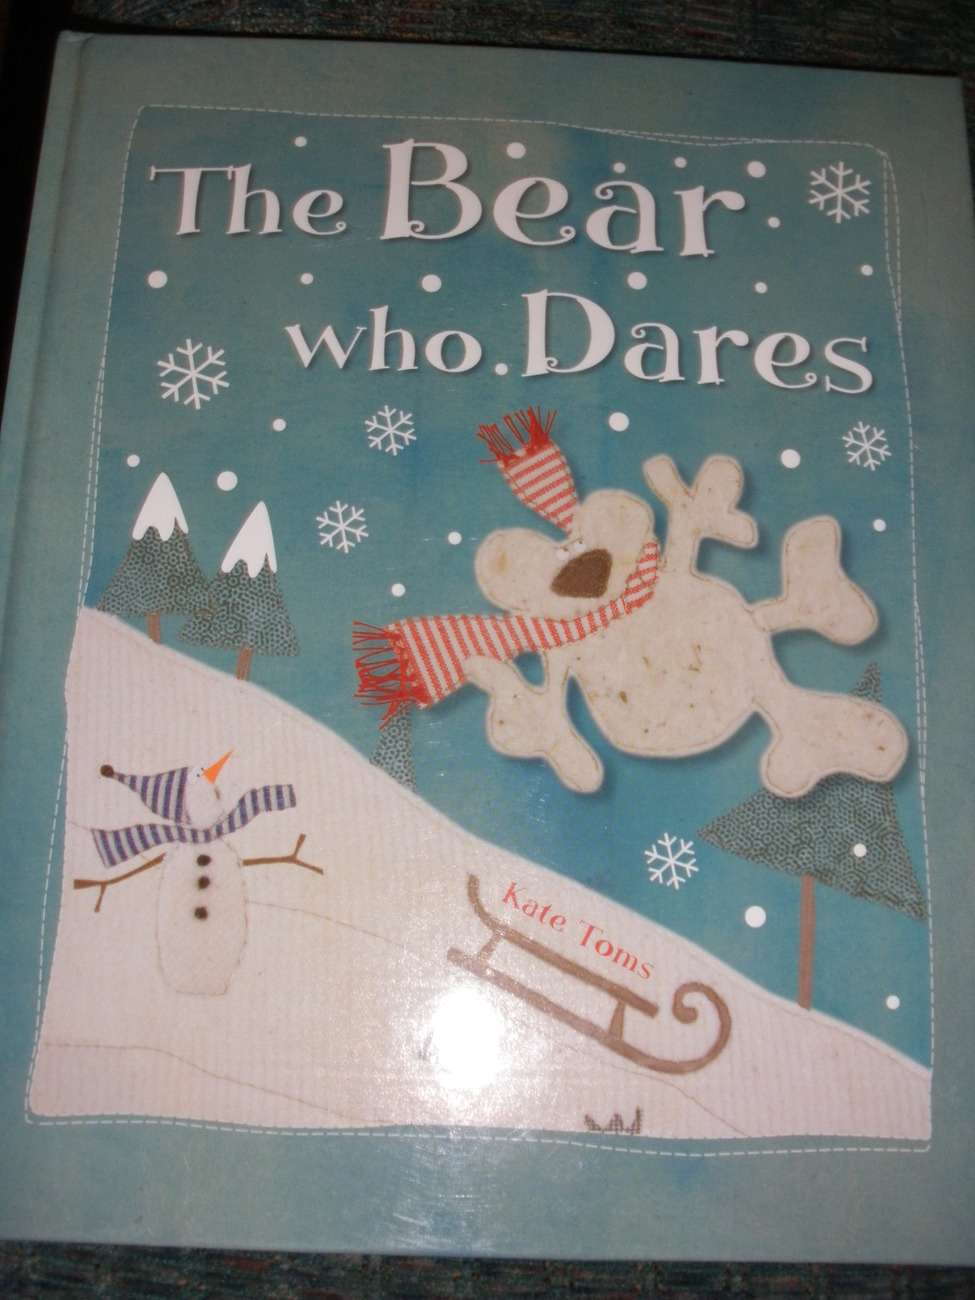 The Bear who Dares, children's book, by Kate Toms